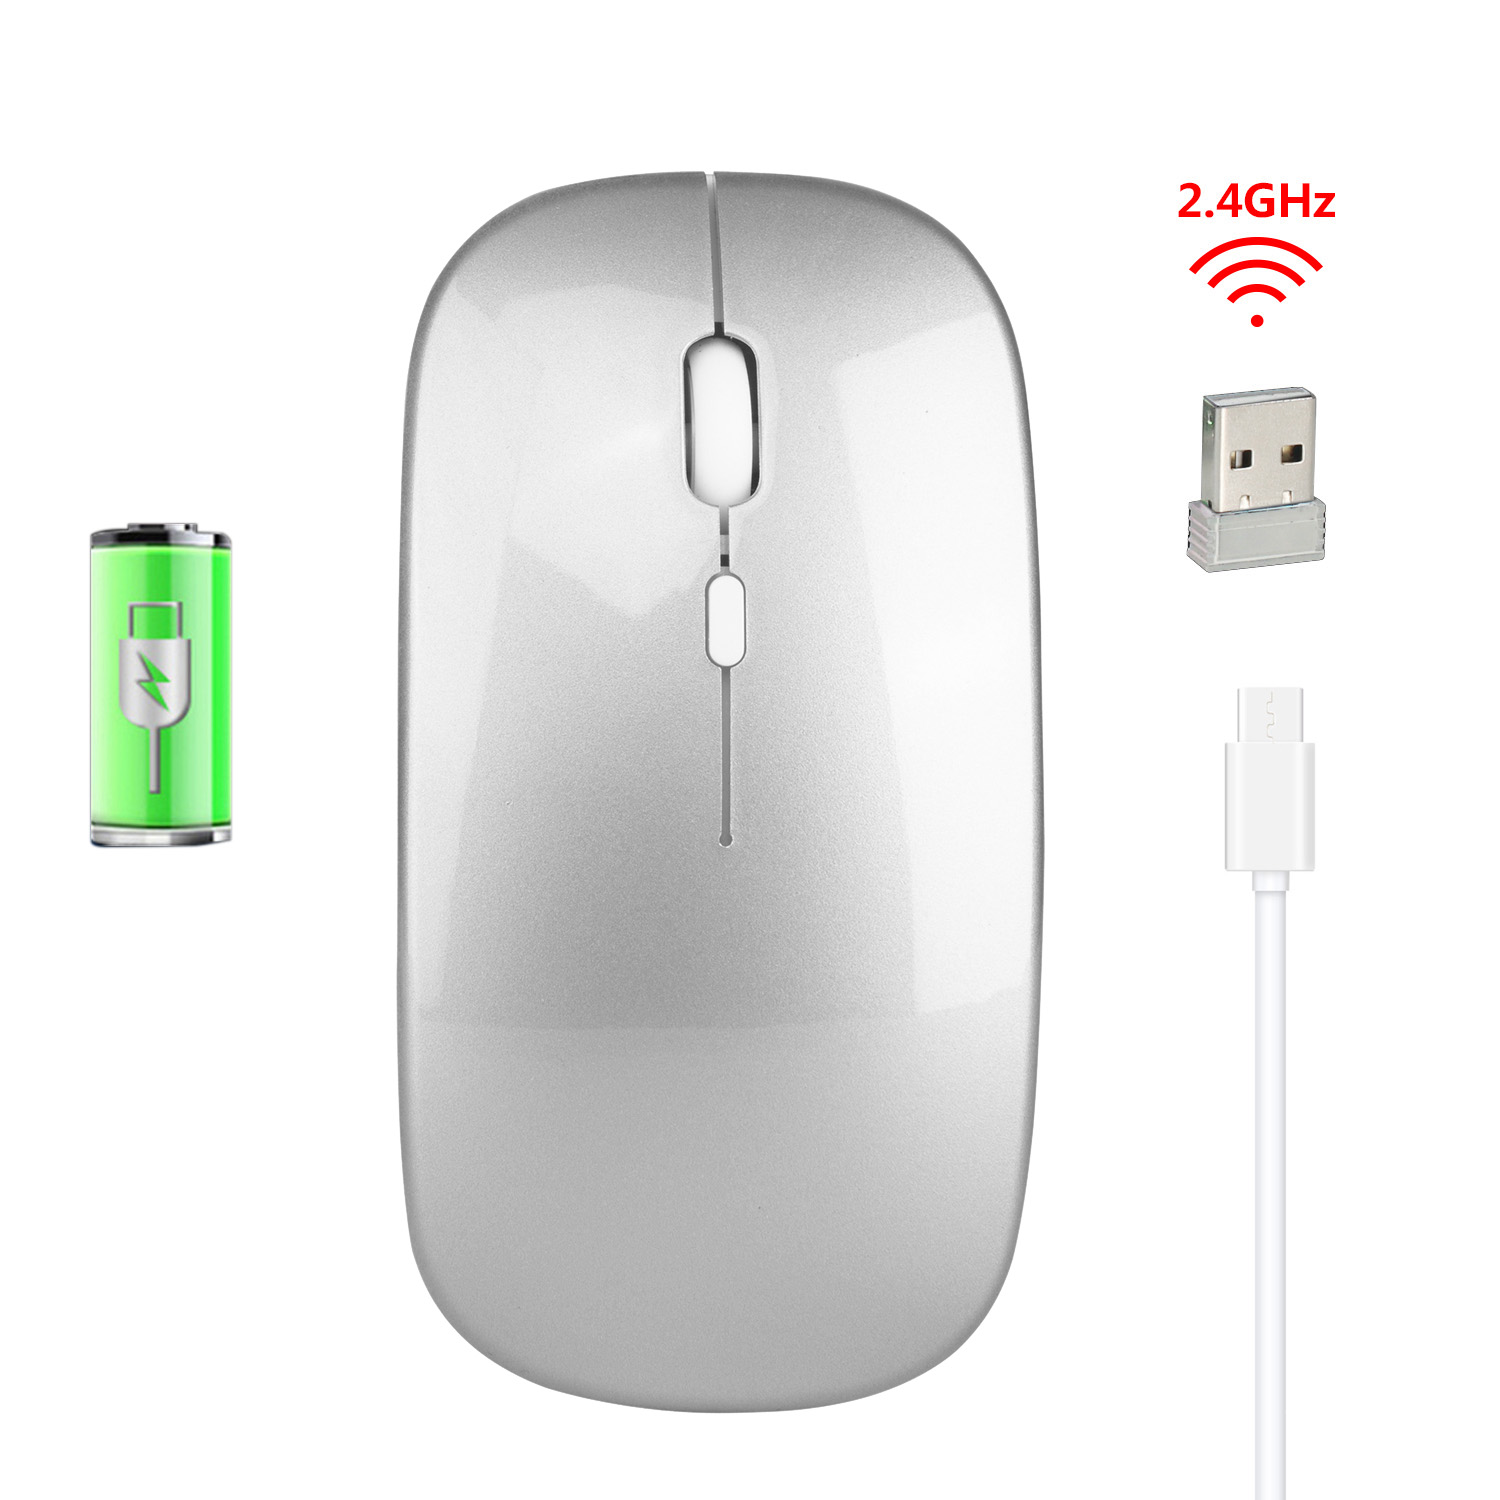 M80 2.4G Wireless Rechargeable Charging Mouse Ultra-Thin Silent Office Notebook Opto-electronic Mouse Silver